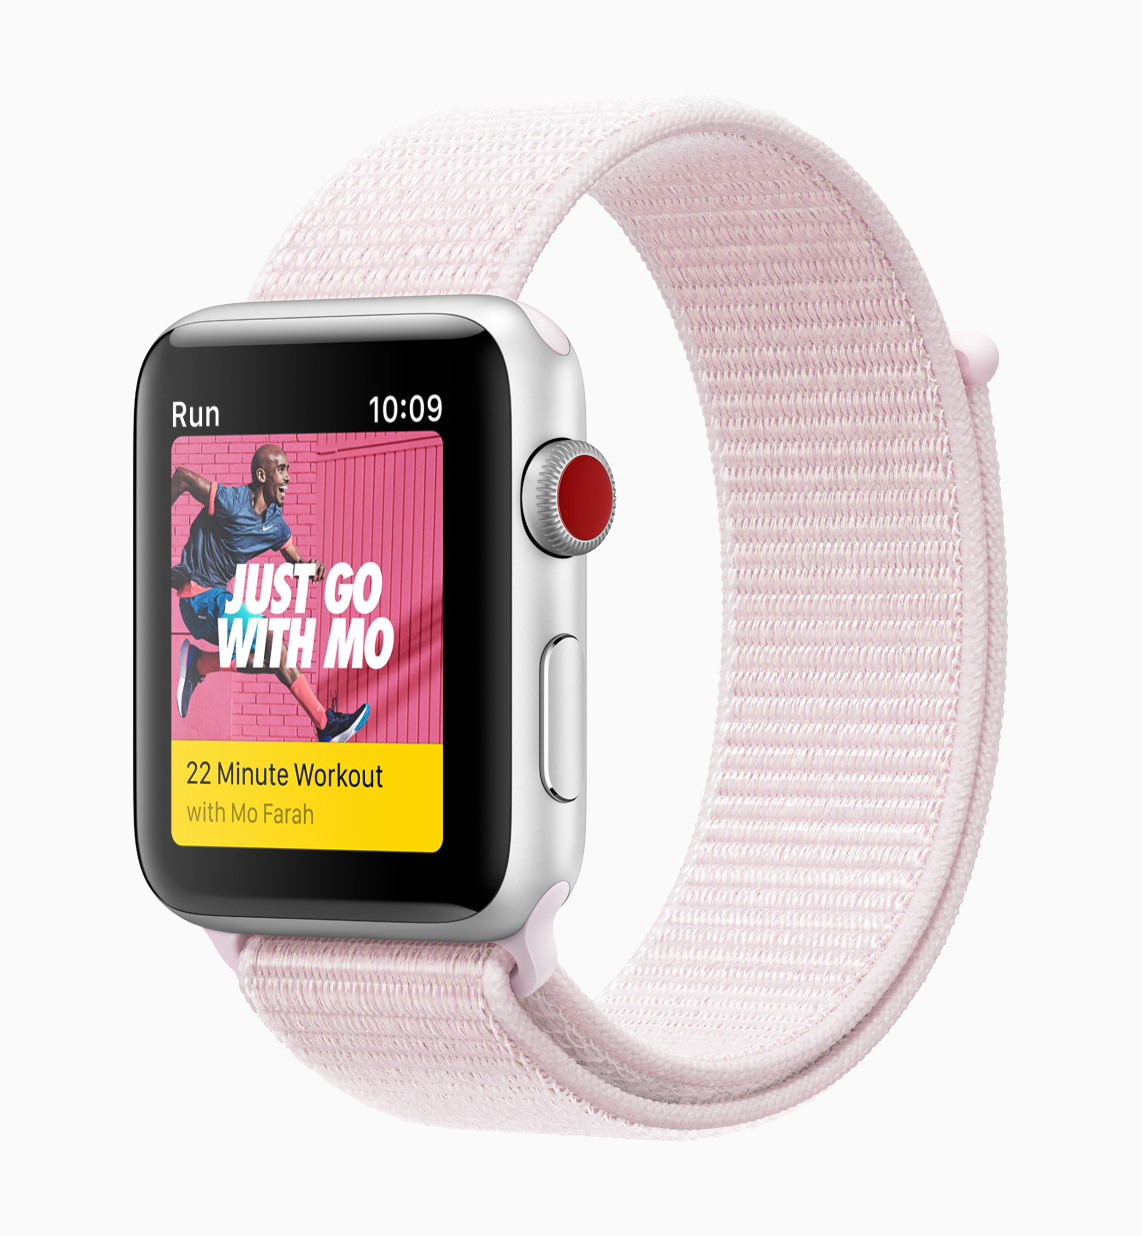 Apple Welcomes Spring With New Apple Watch Bands